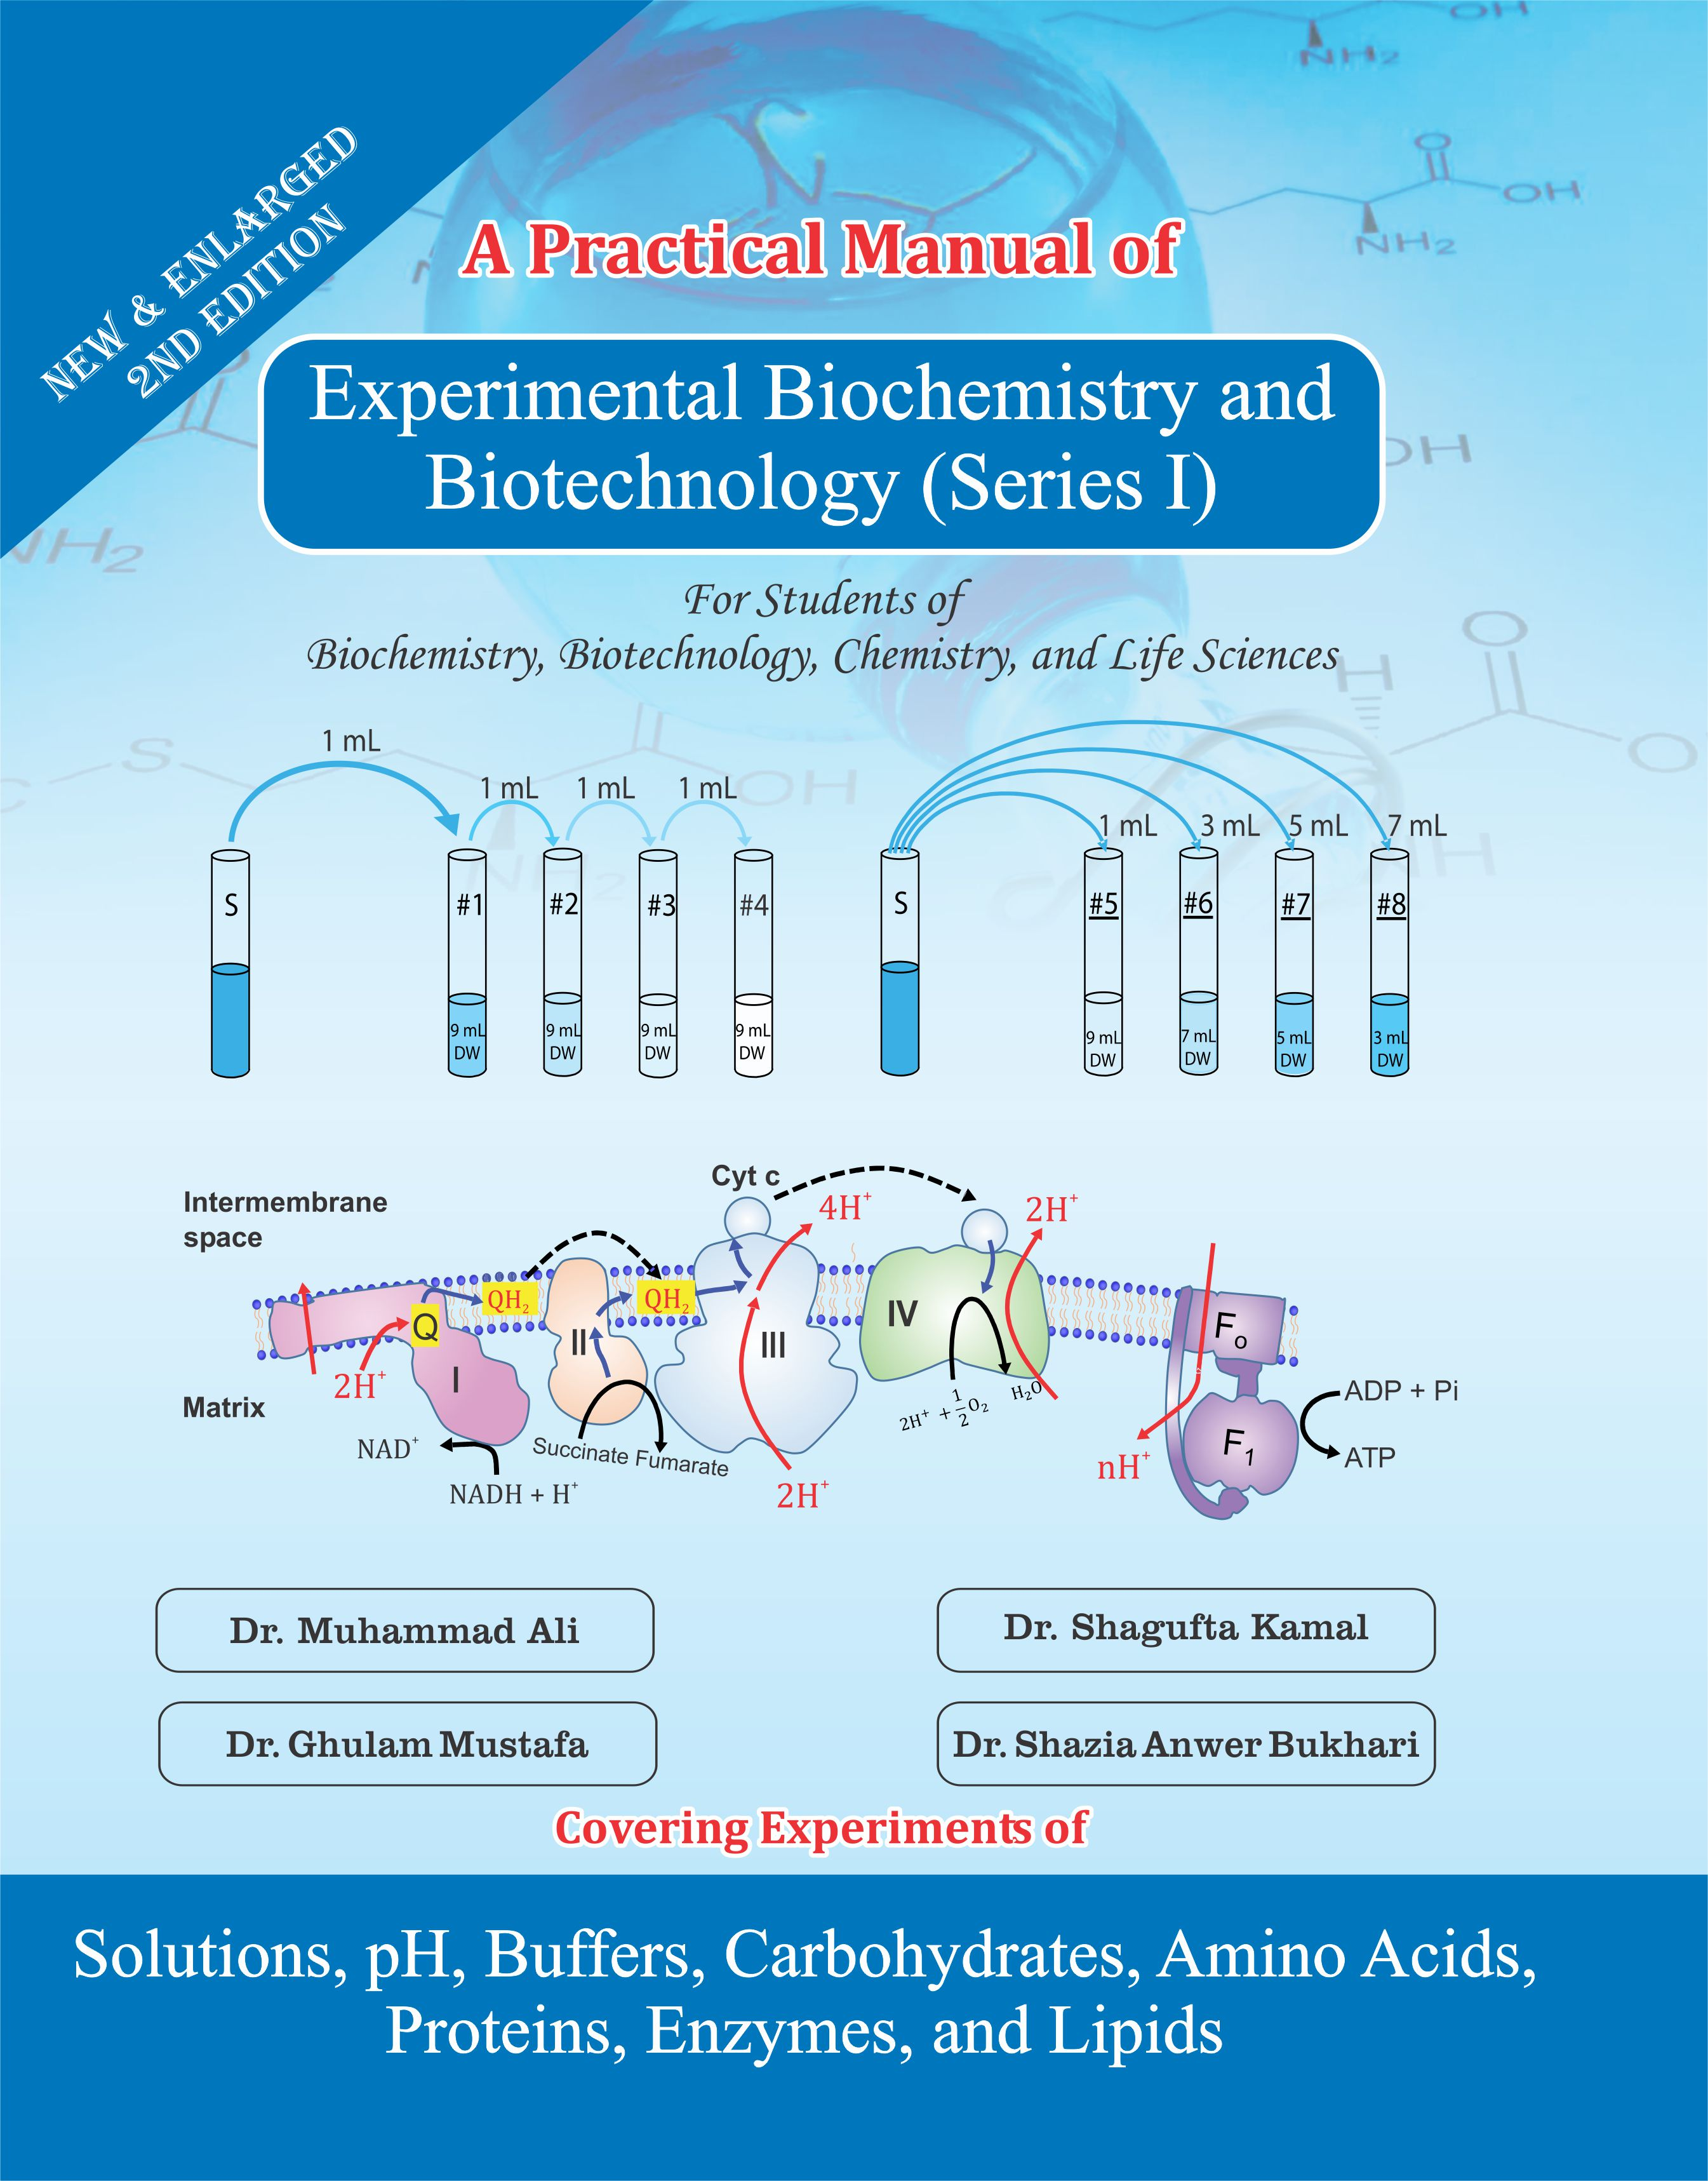 experimental biochemistry and biotechnology (series i)